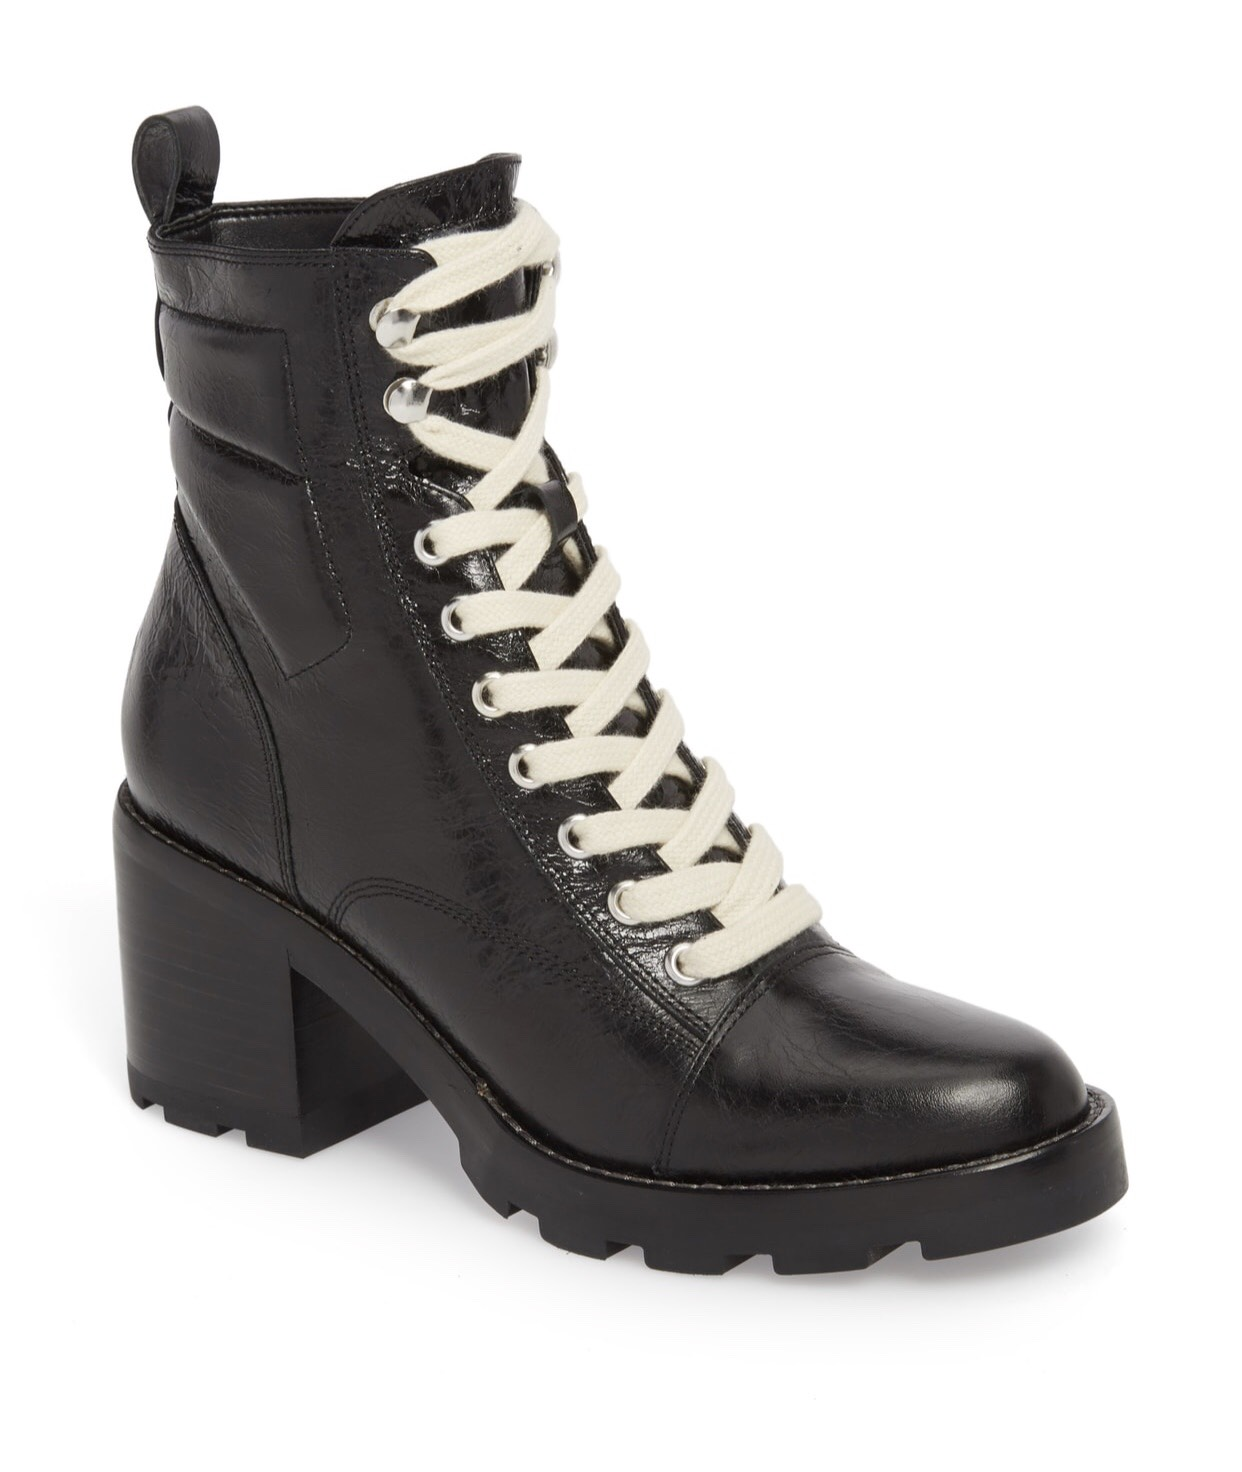 Marc Fisher 'Warid' Moto Bootie {$164.90} - After sale: $248.95